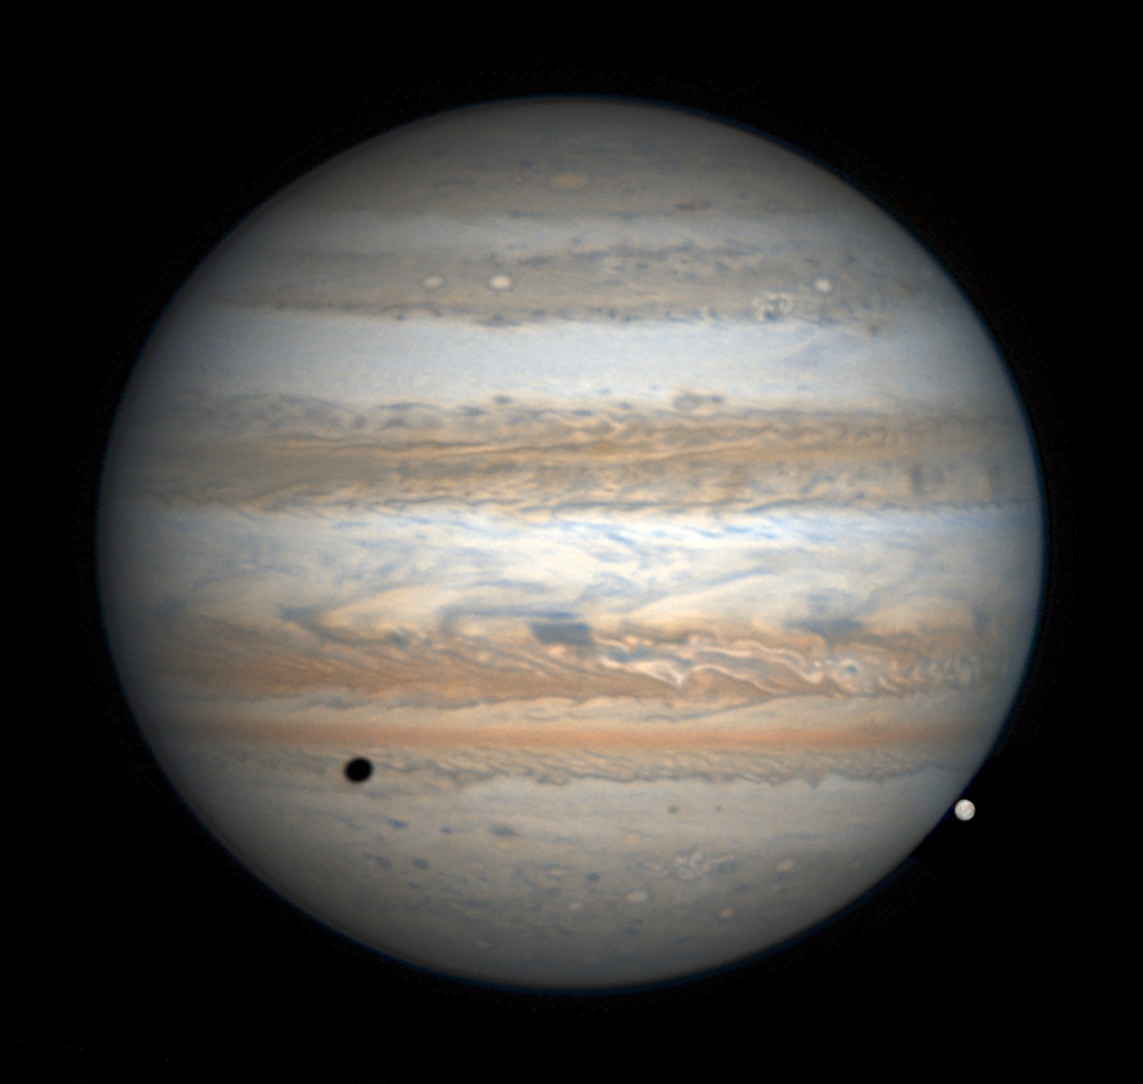 Jupiter on Feb. 19, 2017